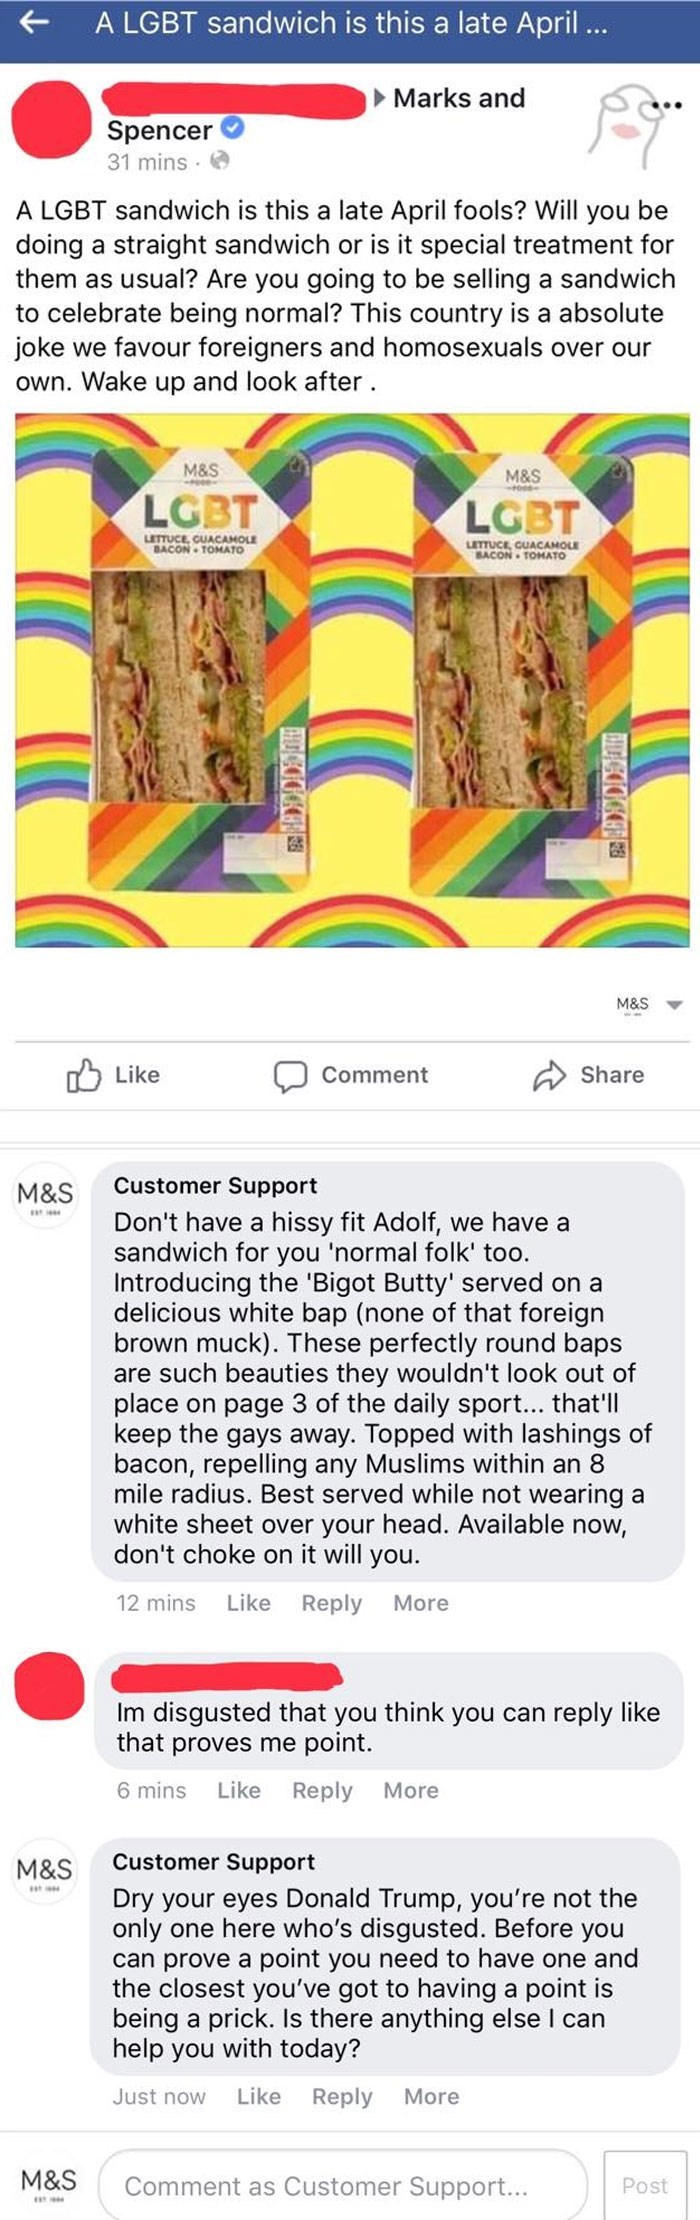 Text - A LGBT sandwich is this a late April .. Marks and Spencer 31 mins A LGBT sandwich is this a late April fools? Will you be doing a straight sandwich or is it special treatment for them as usual? Are you going to be selling a sandwich to celebrate being normal? This country is a absolute joke we favour foreigners and homosexuals over our own. Wake up and look after M&S M&S LGBT LGBT LETTUCE CUACAMOLE BACON TOMATO LETTUCE, CUACAMOLE BACON TOMATO M&S Like Share Comment Customer Support M&S Do